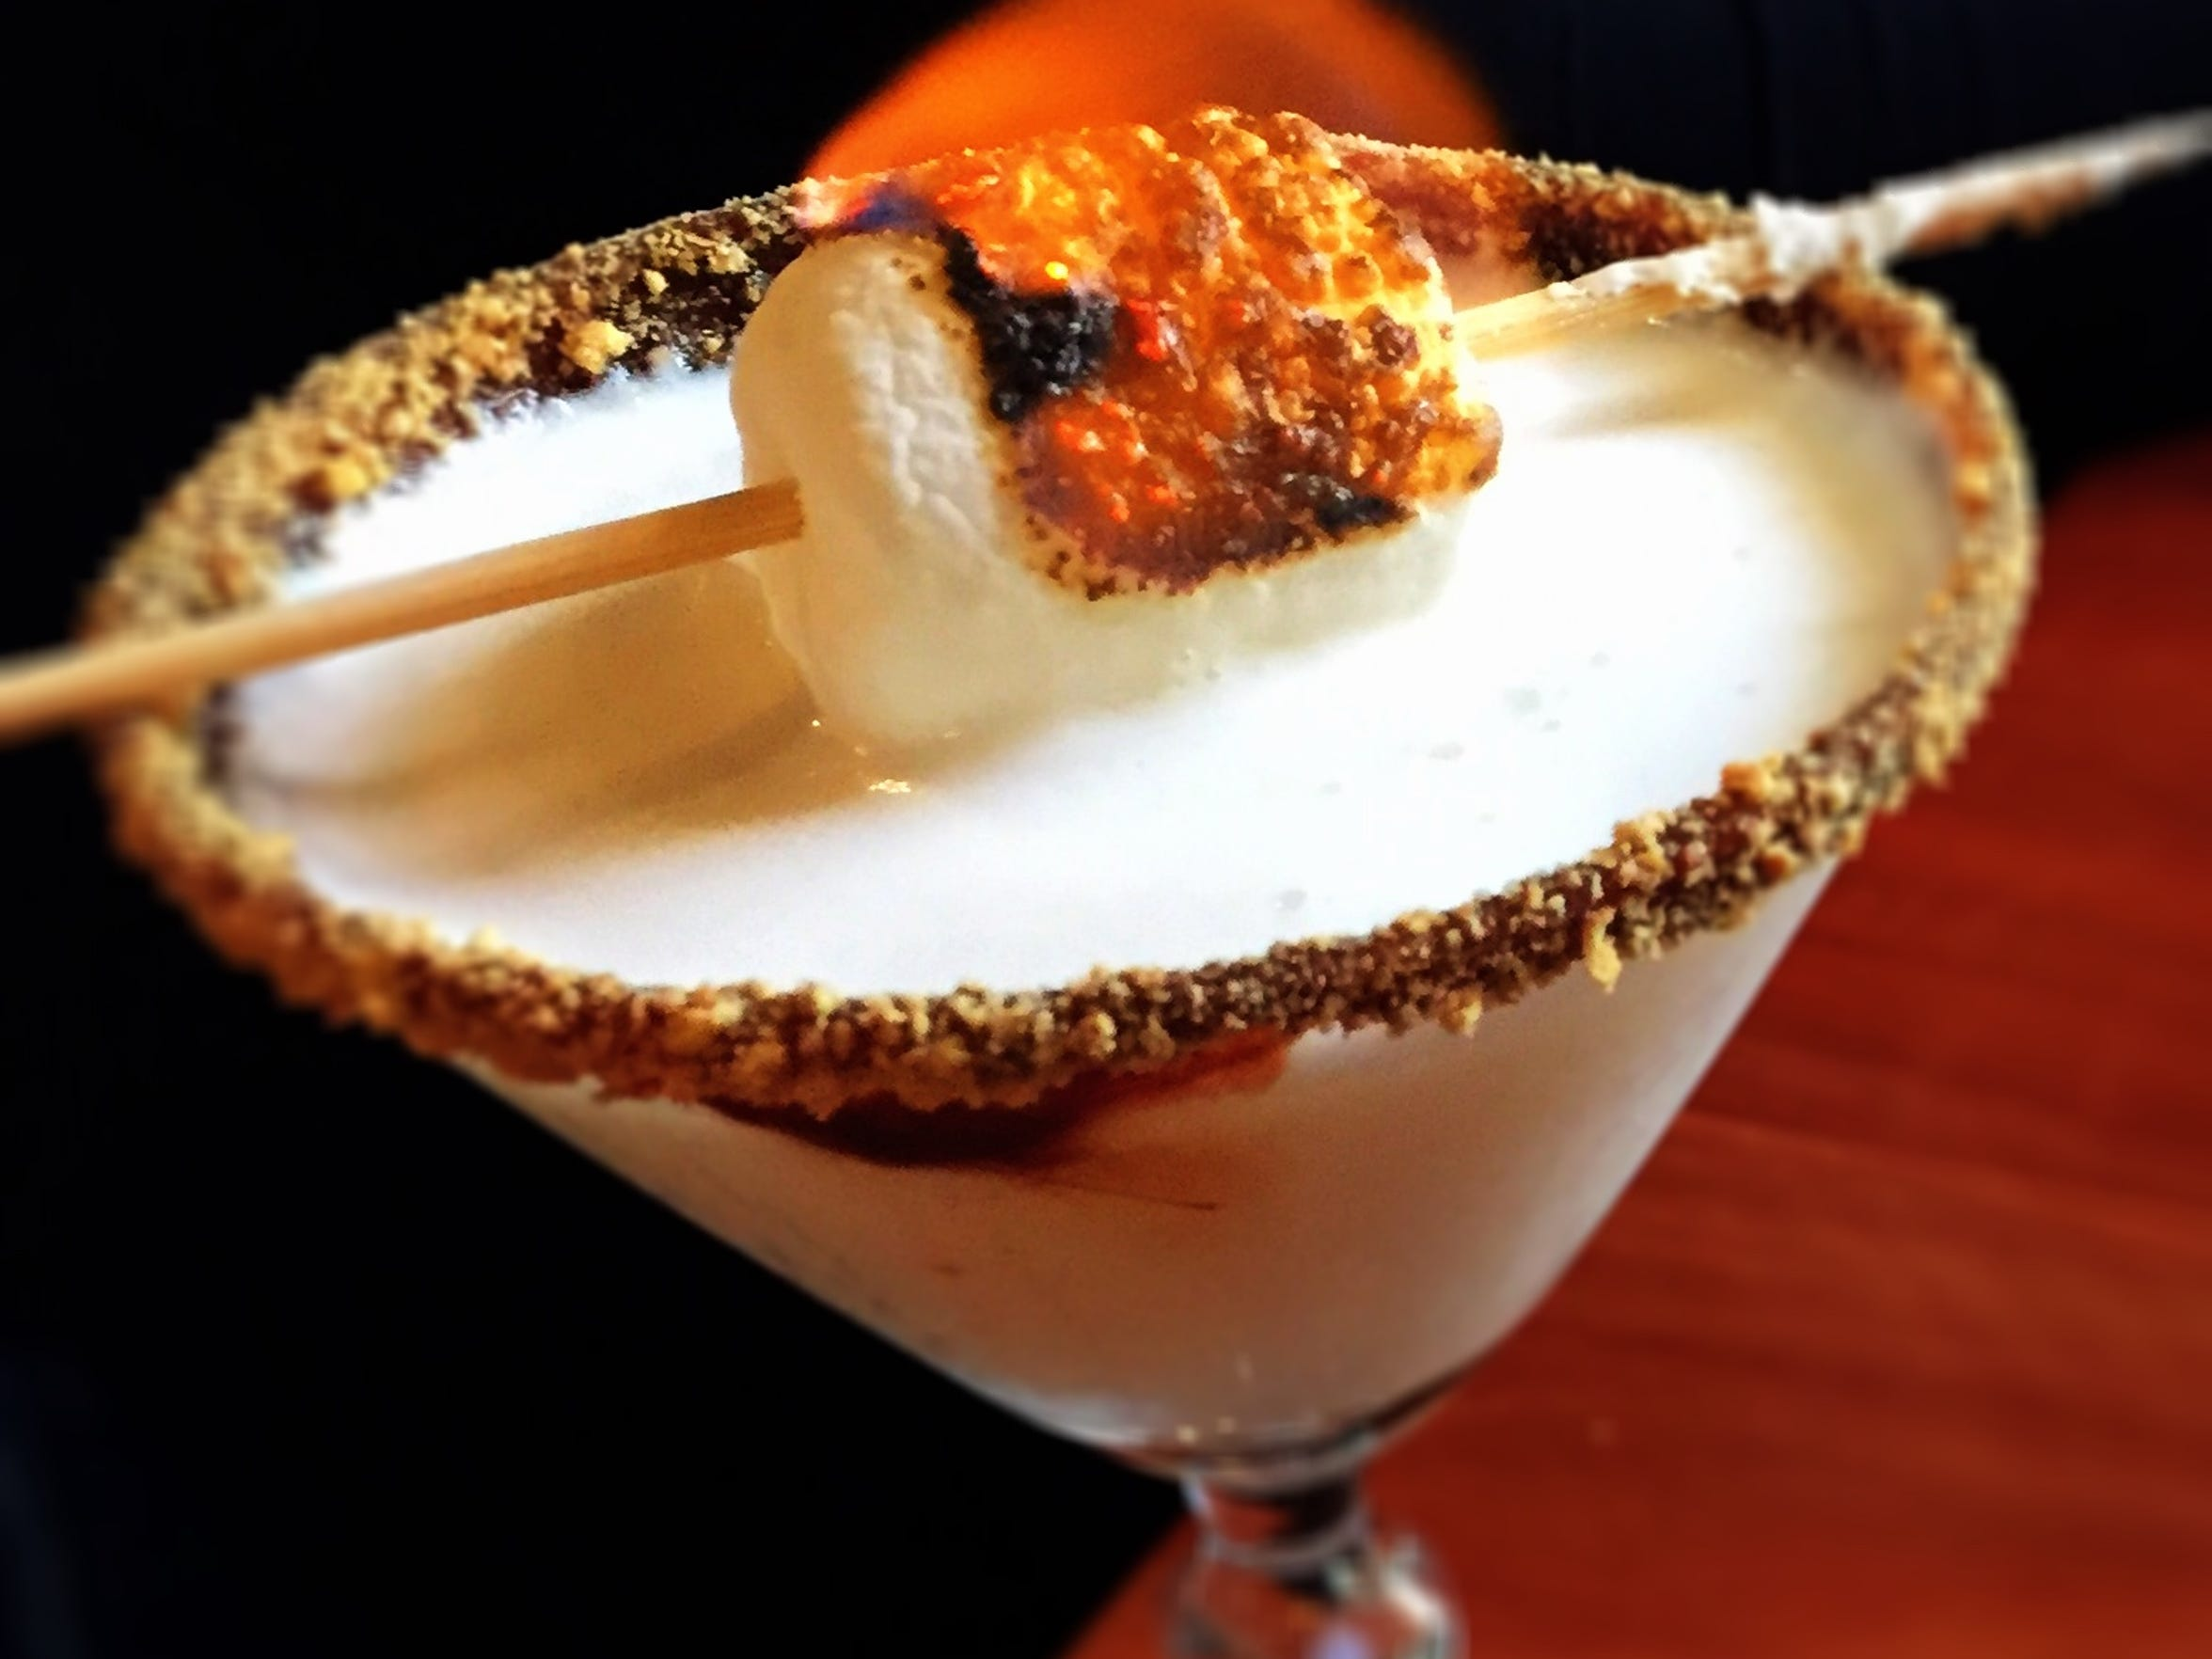 The fireside chat cocktail at Enbar includes a burning marshmallow and a chocolate/graham rim.